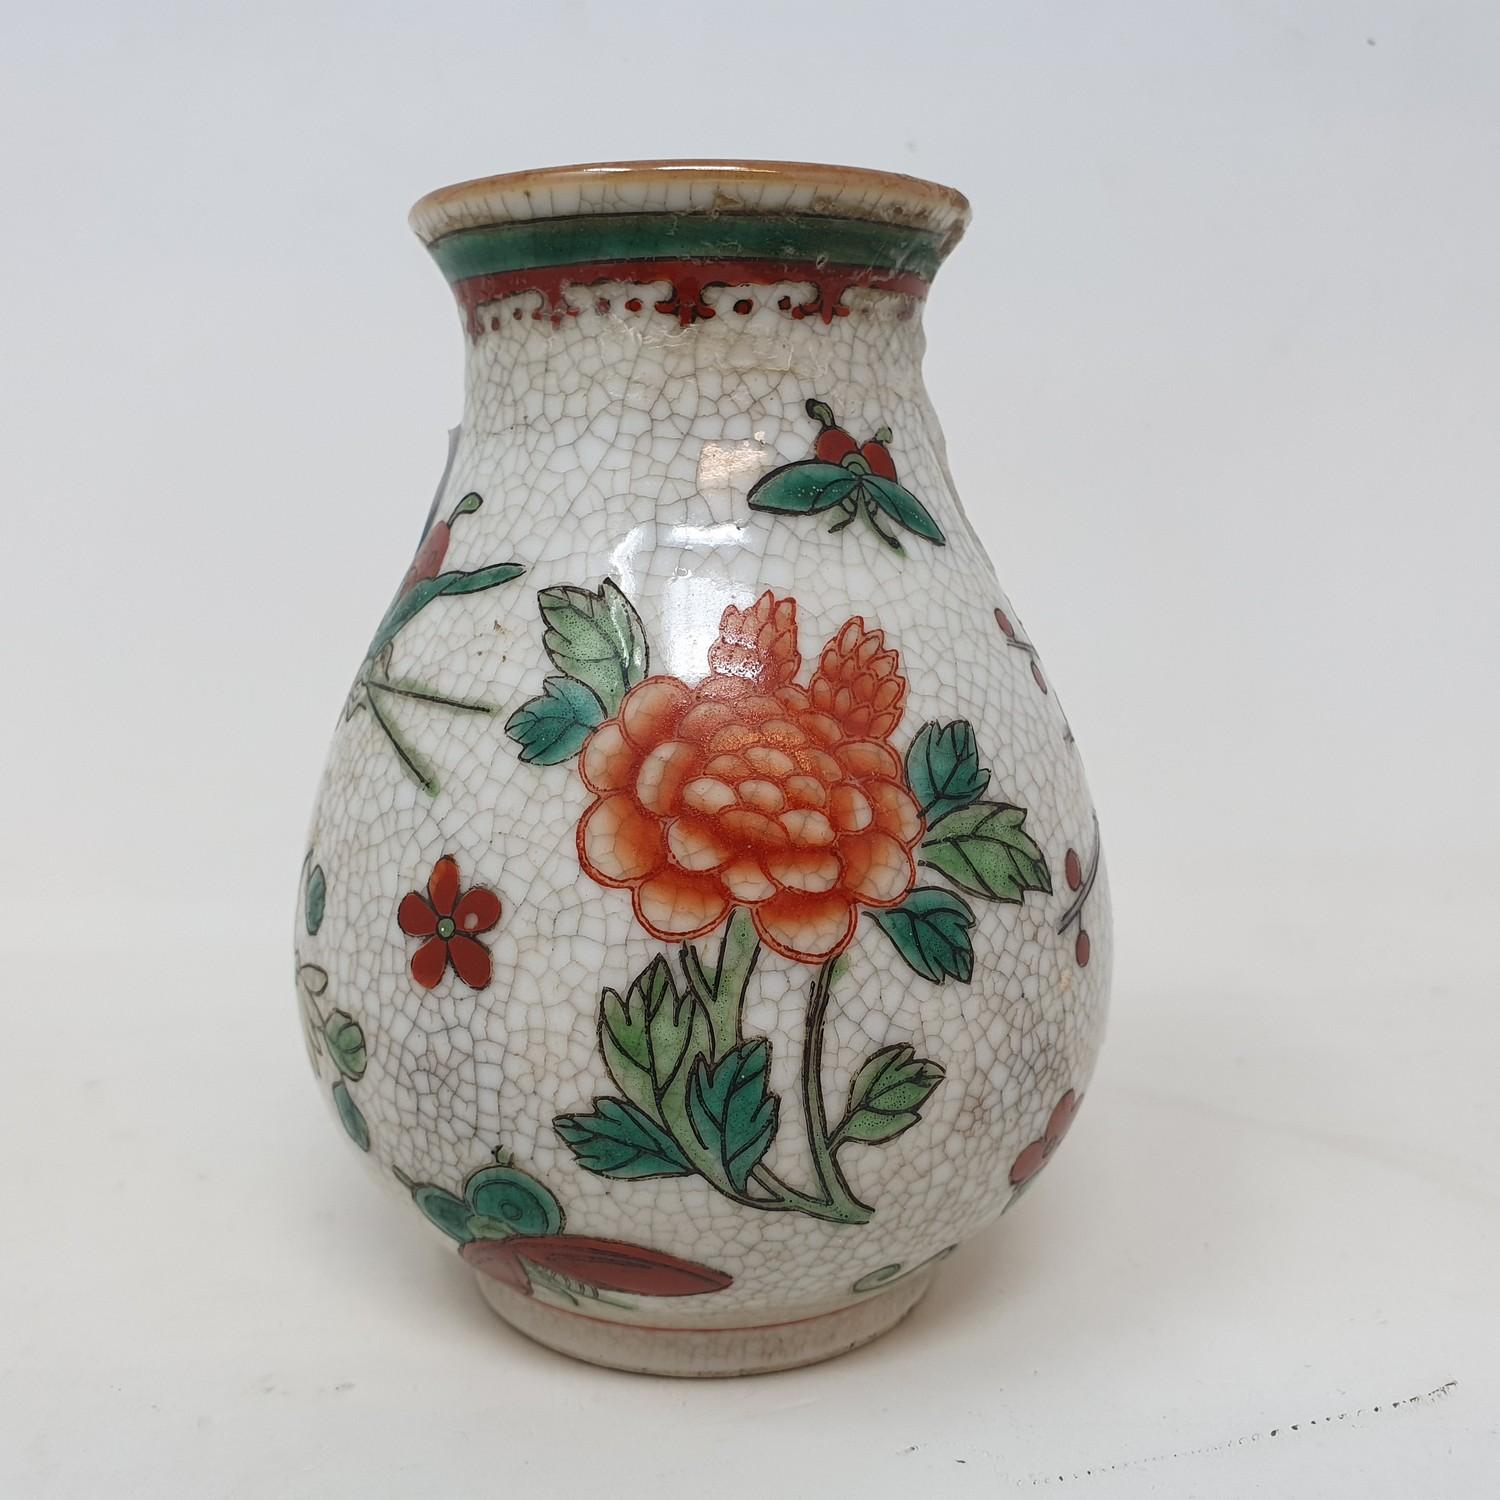 A Chinese polychrome vase, character mark to base, 13 cm high